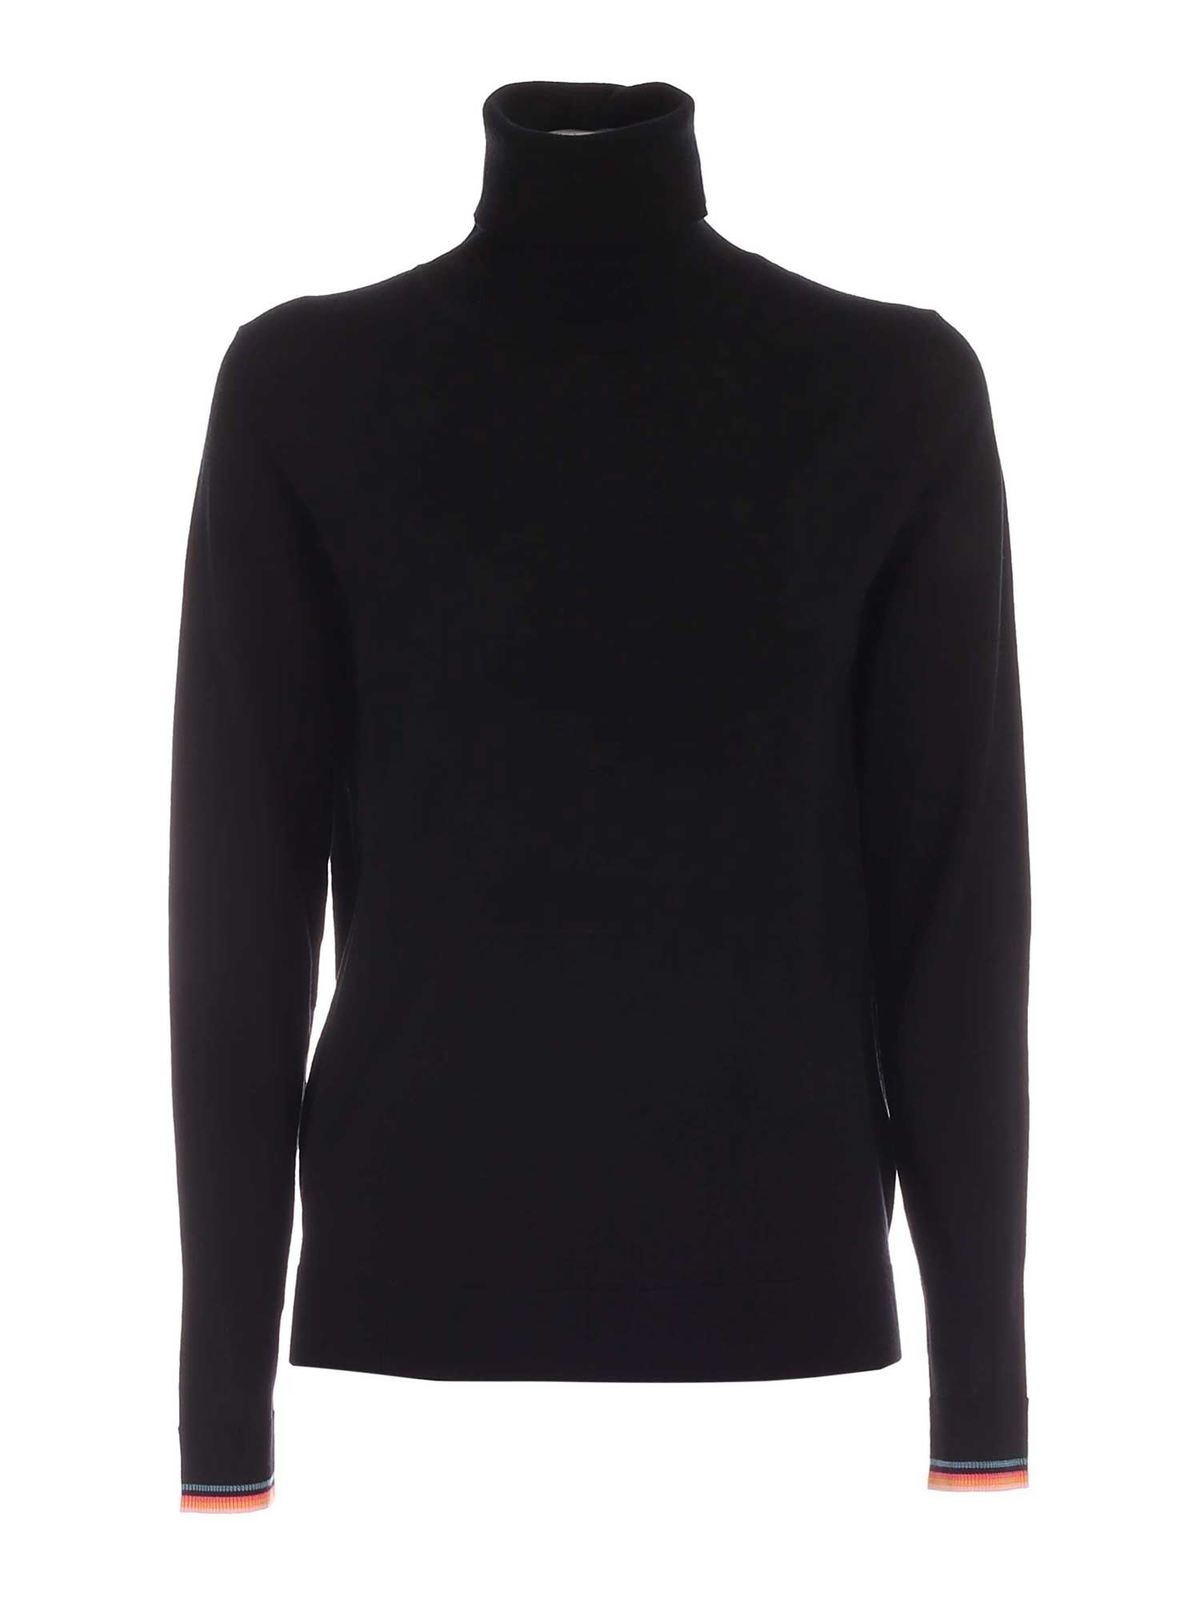 Paul Smith SWIRL DETAIL TURTLENECK IN BLACK